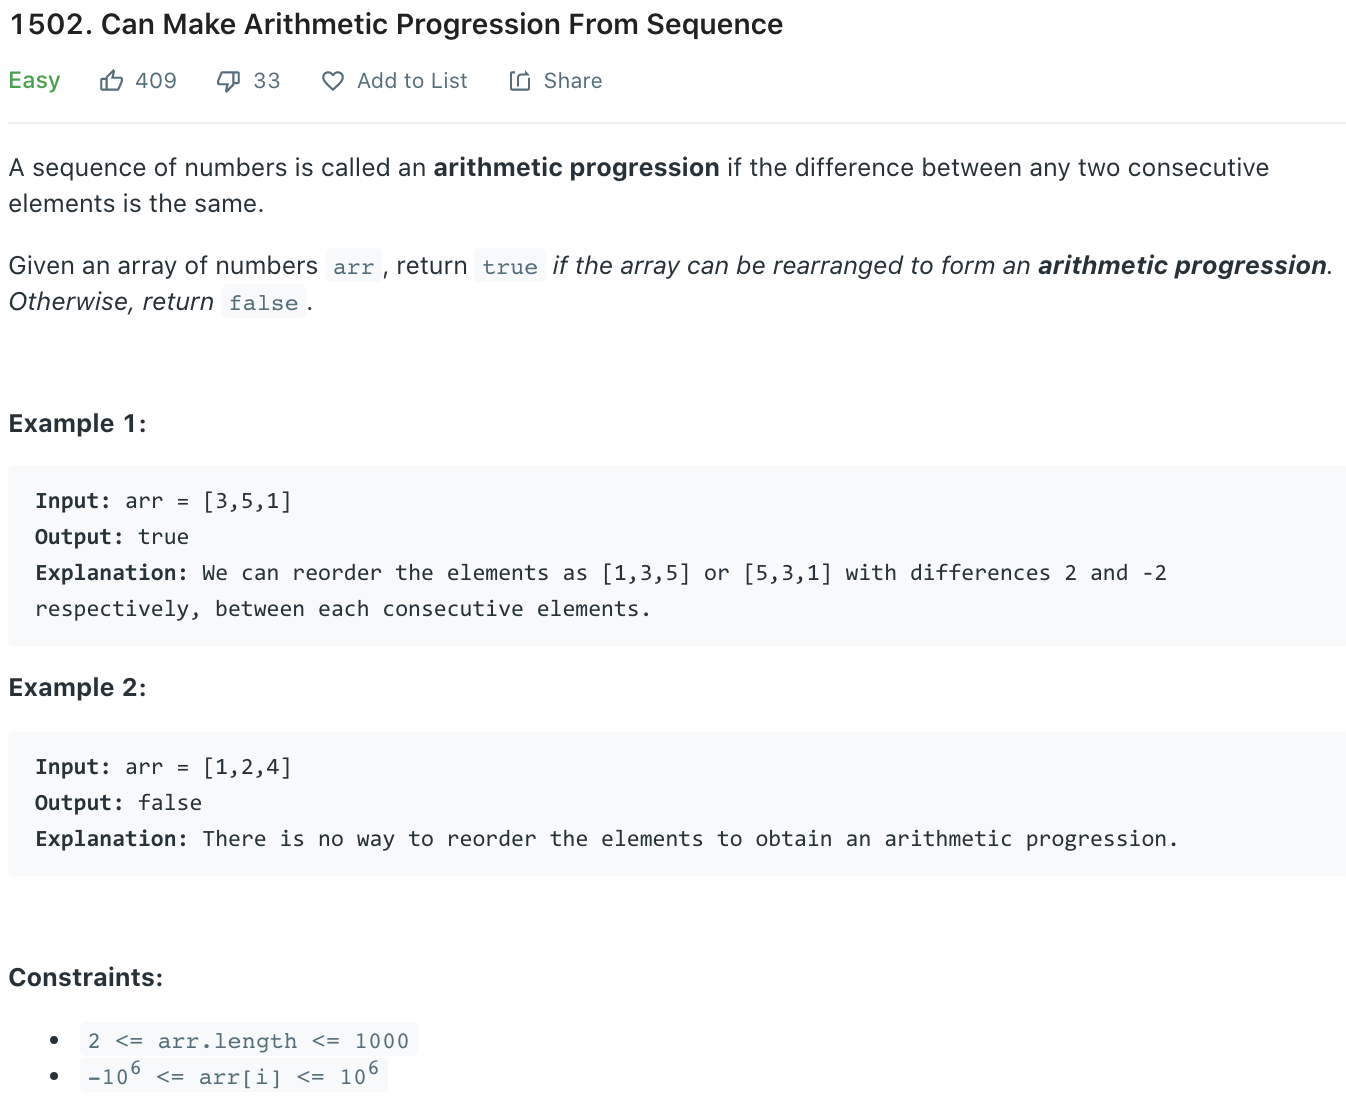 Can Make Arithmetic Progression From Sequence